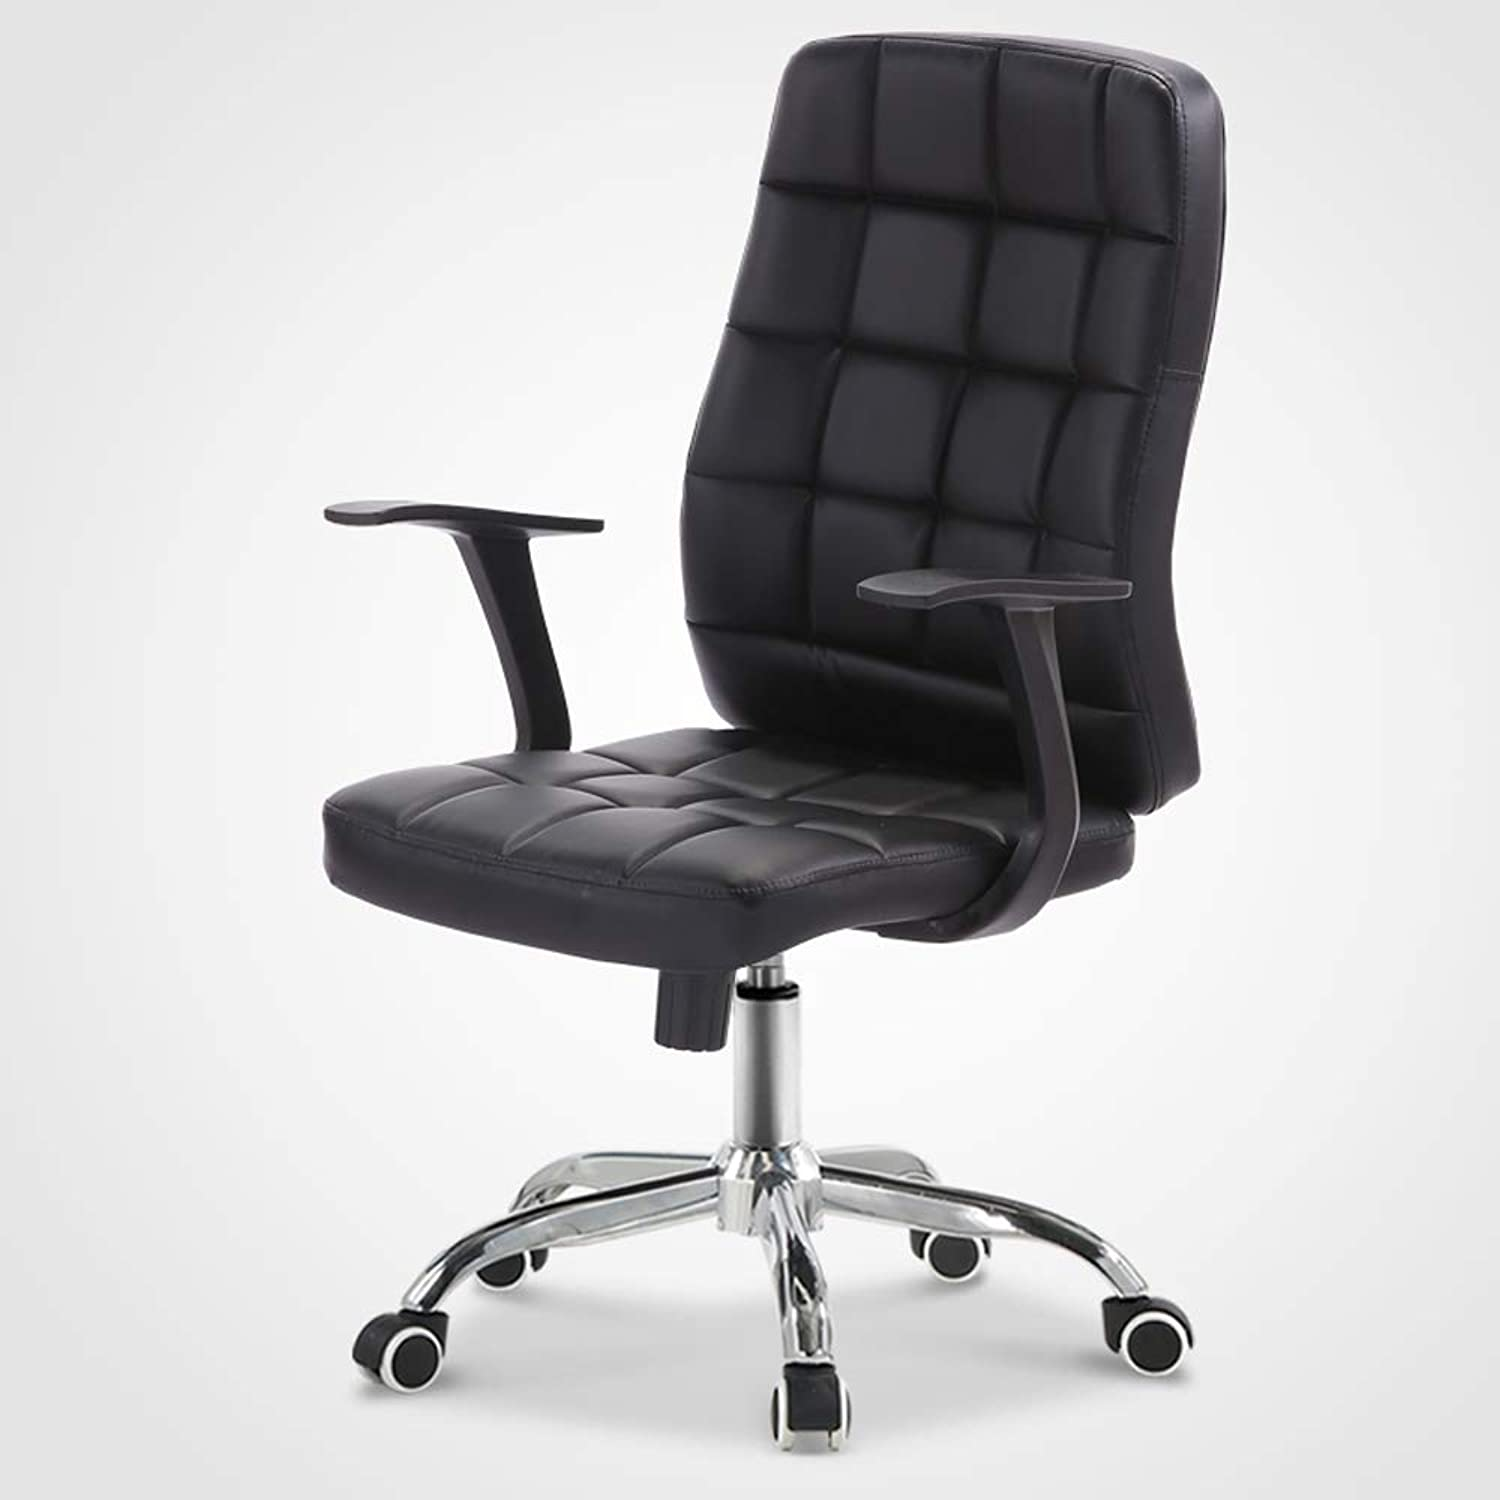 Qing MEI Office Home Computer Chair Swivel Chair Chair Study